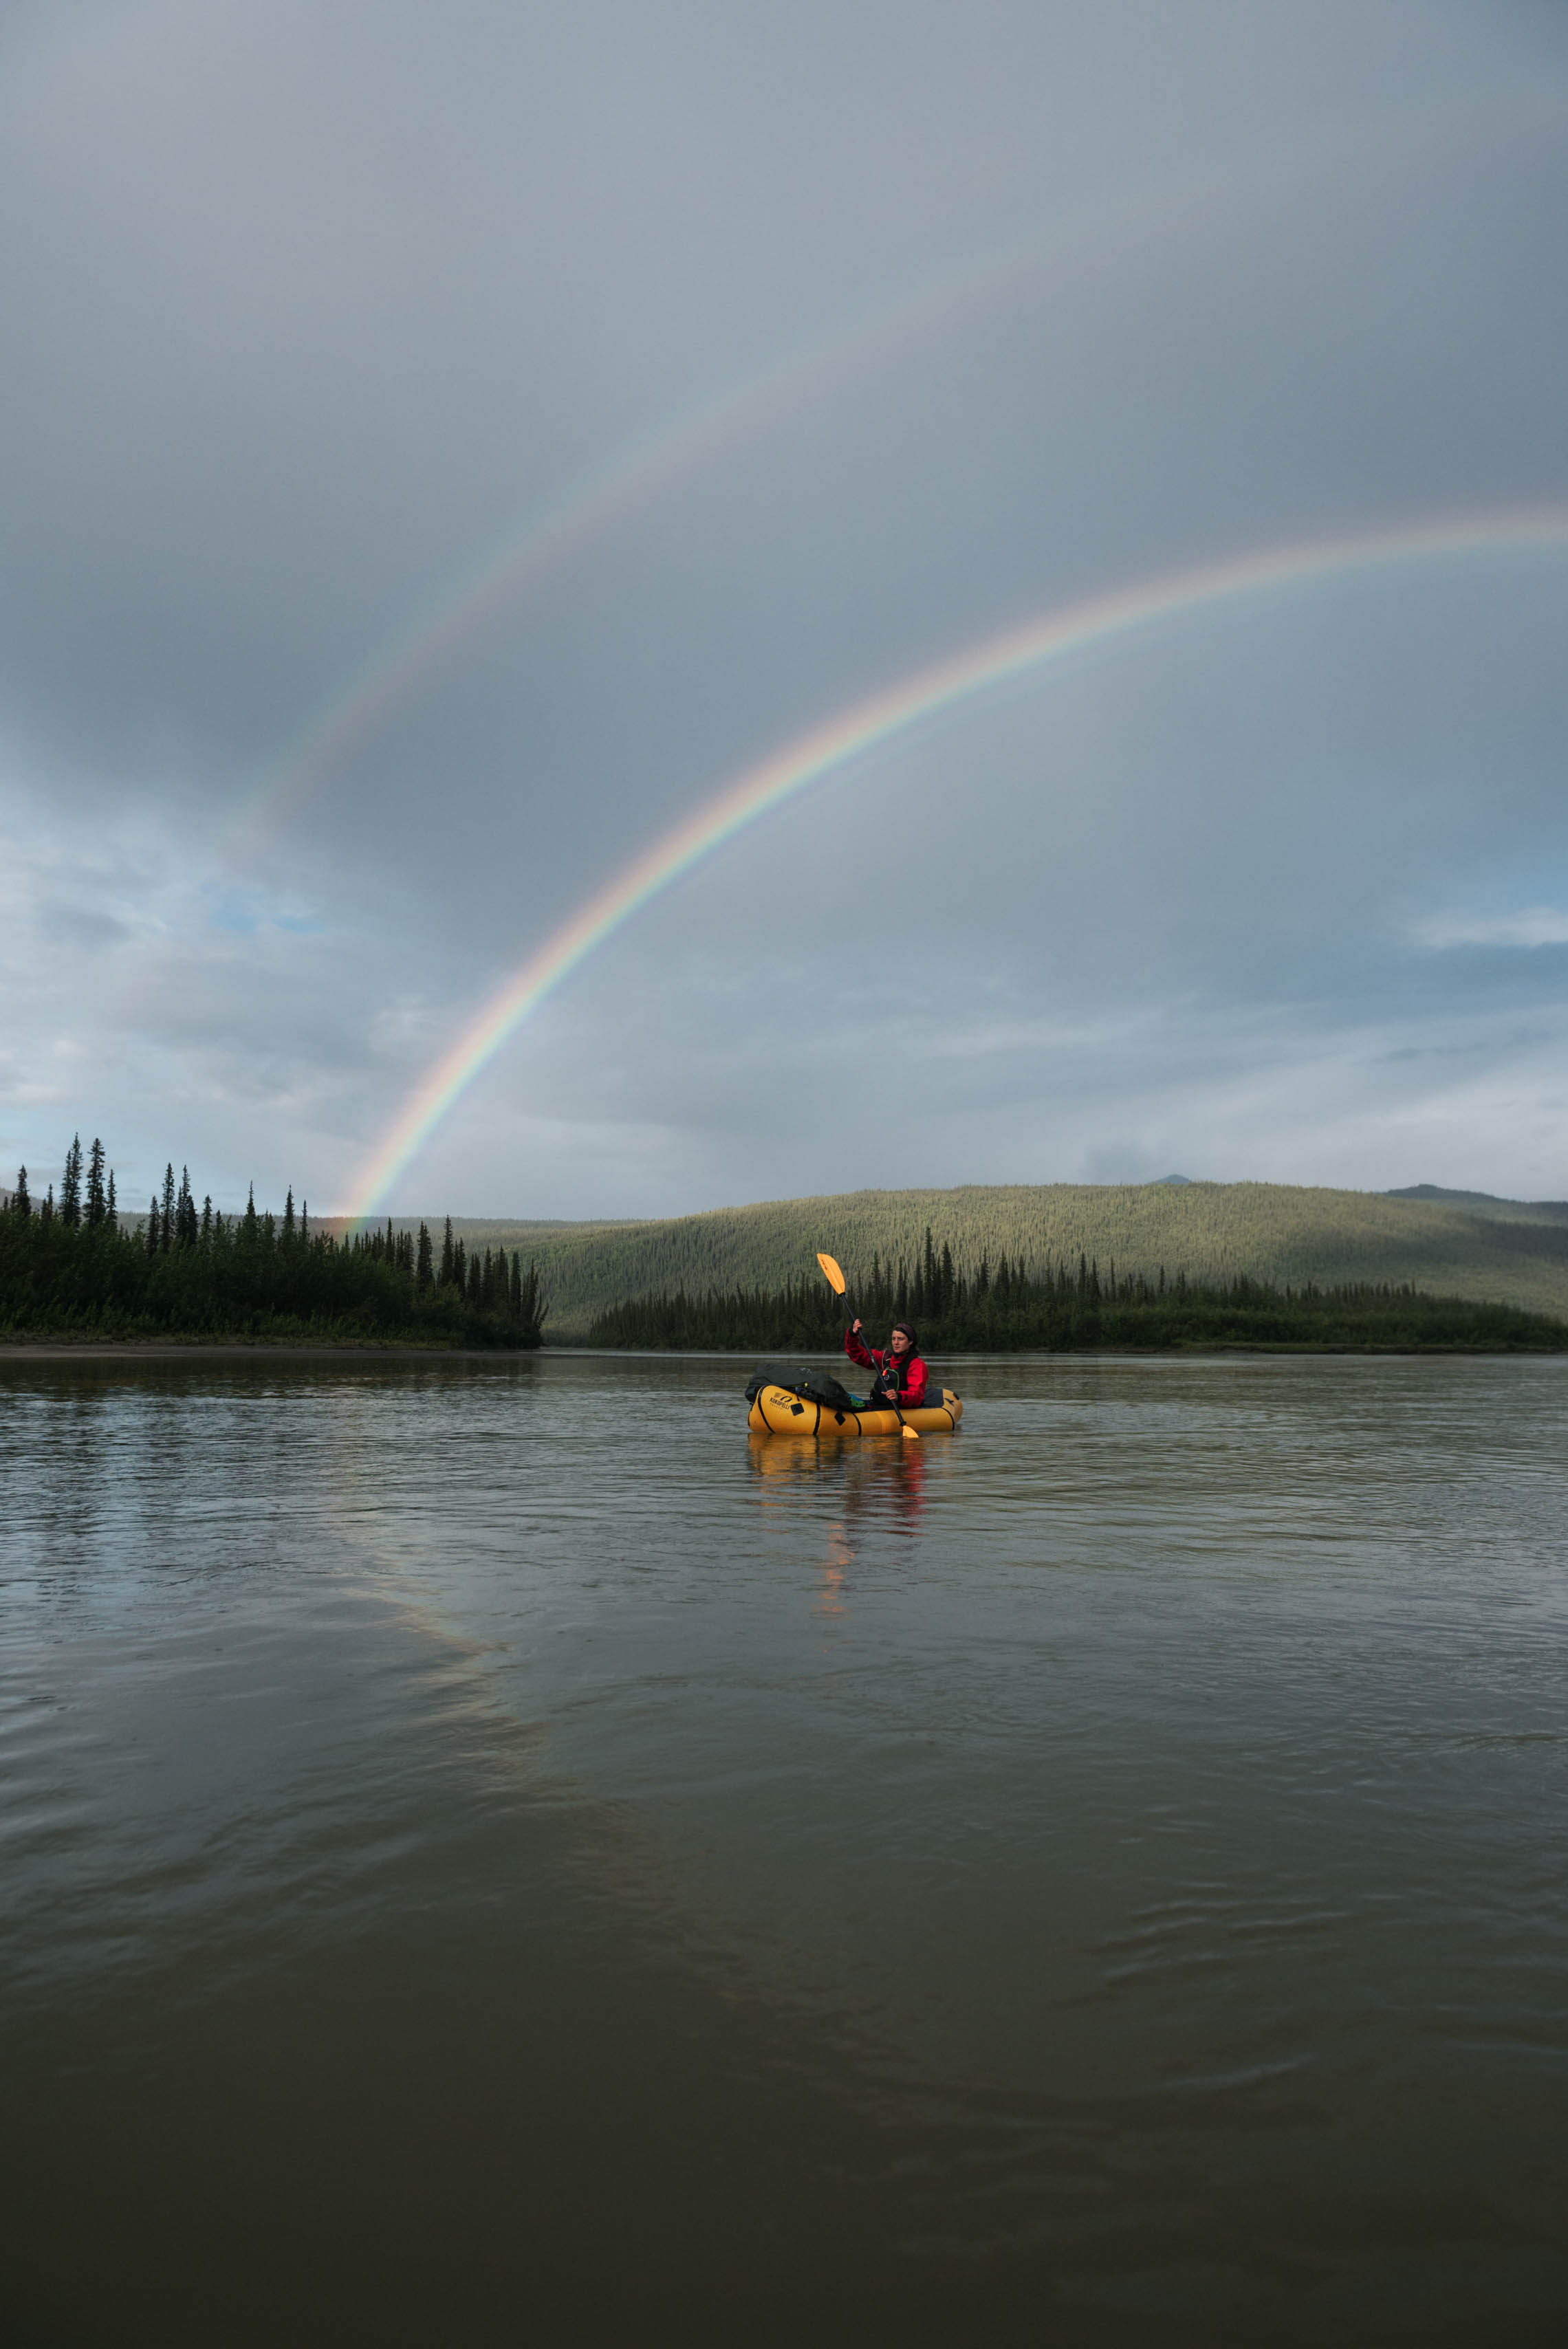 Person packrafting in an arctic lake with a double rainbow above